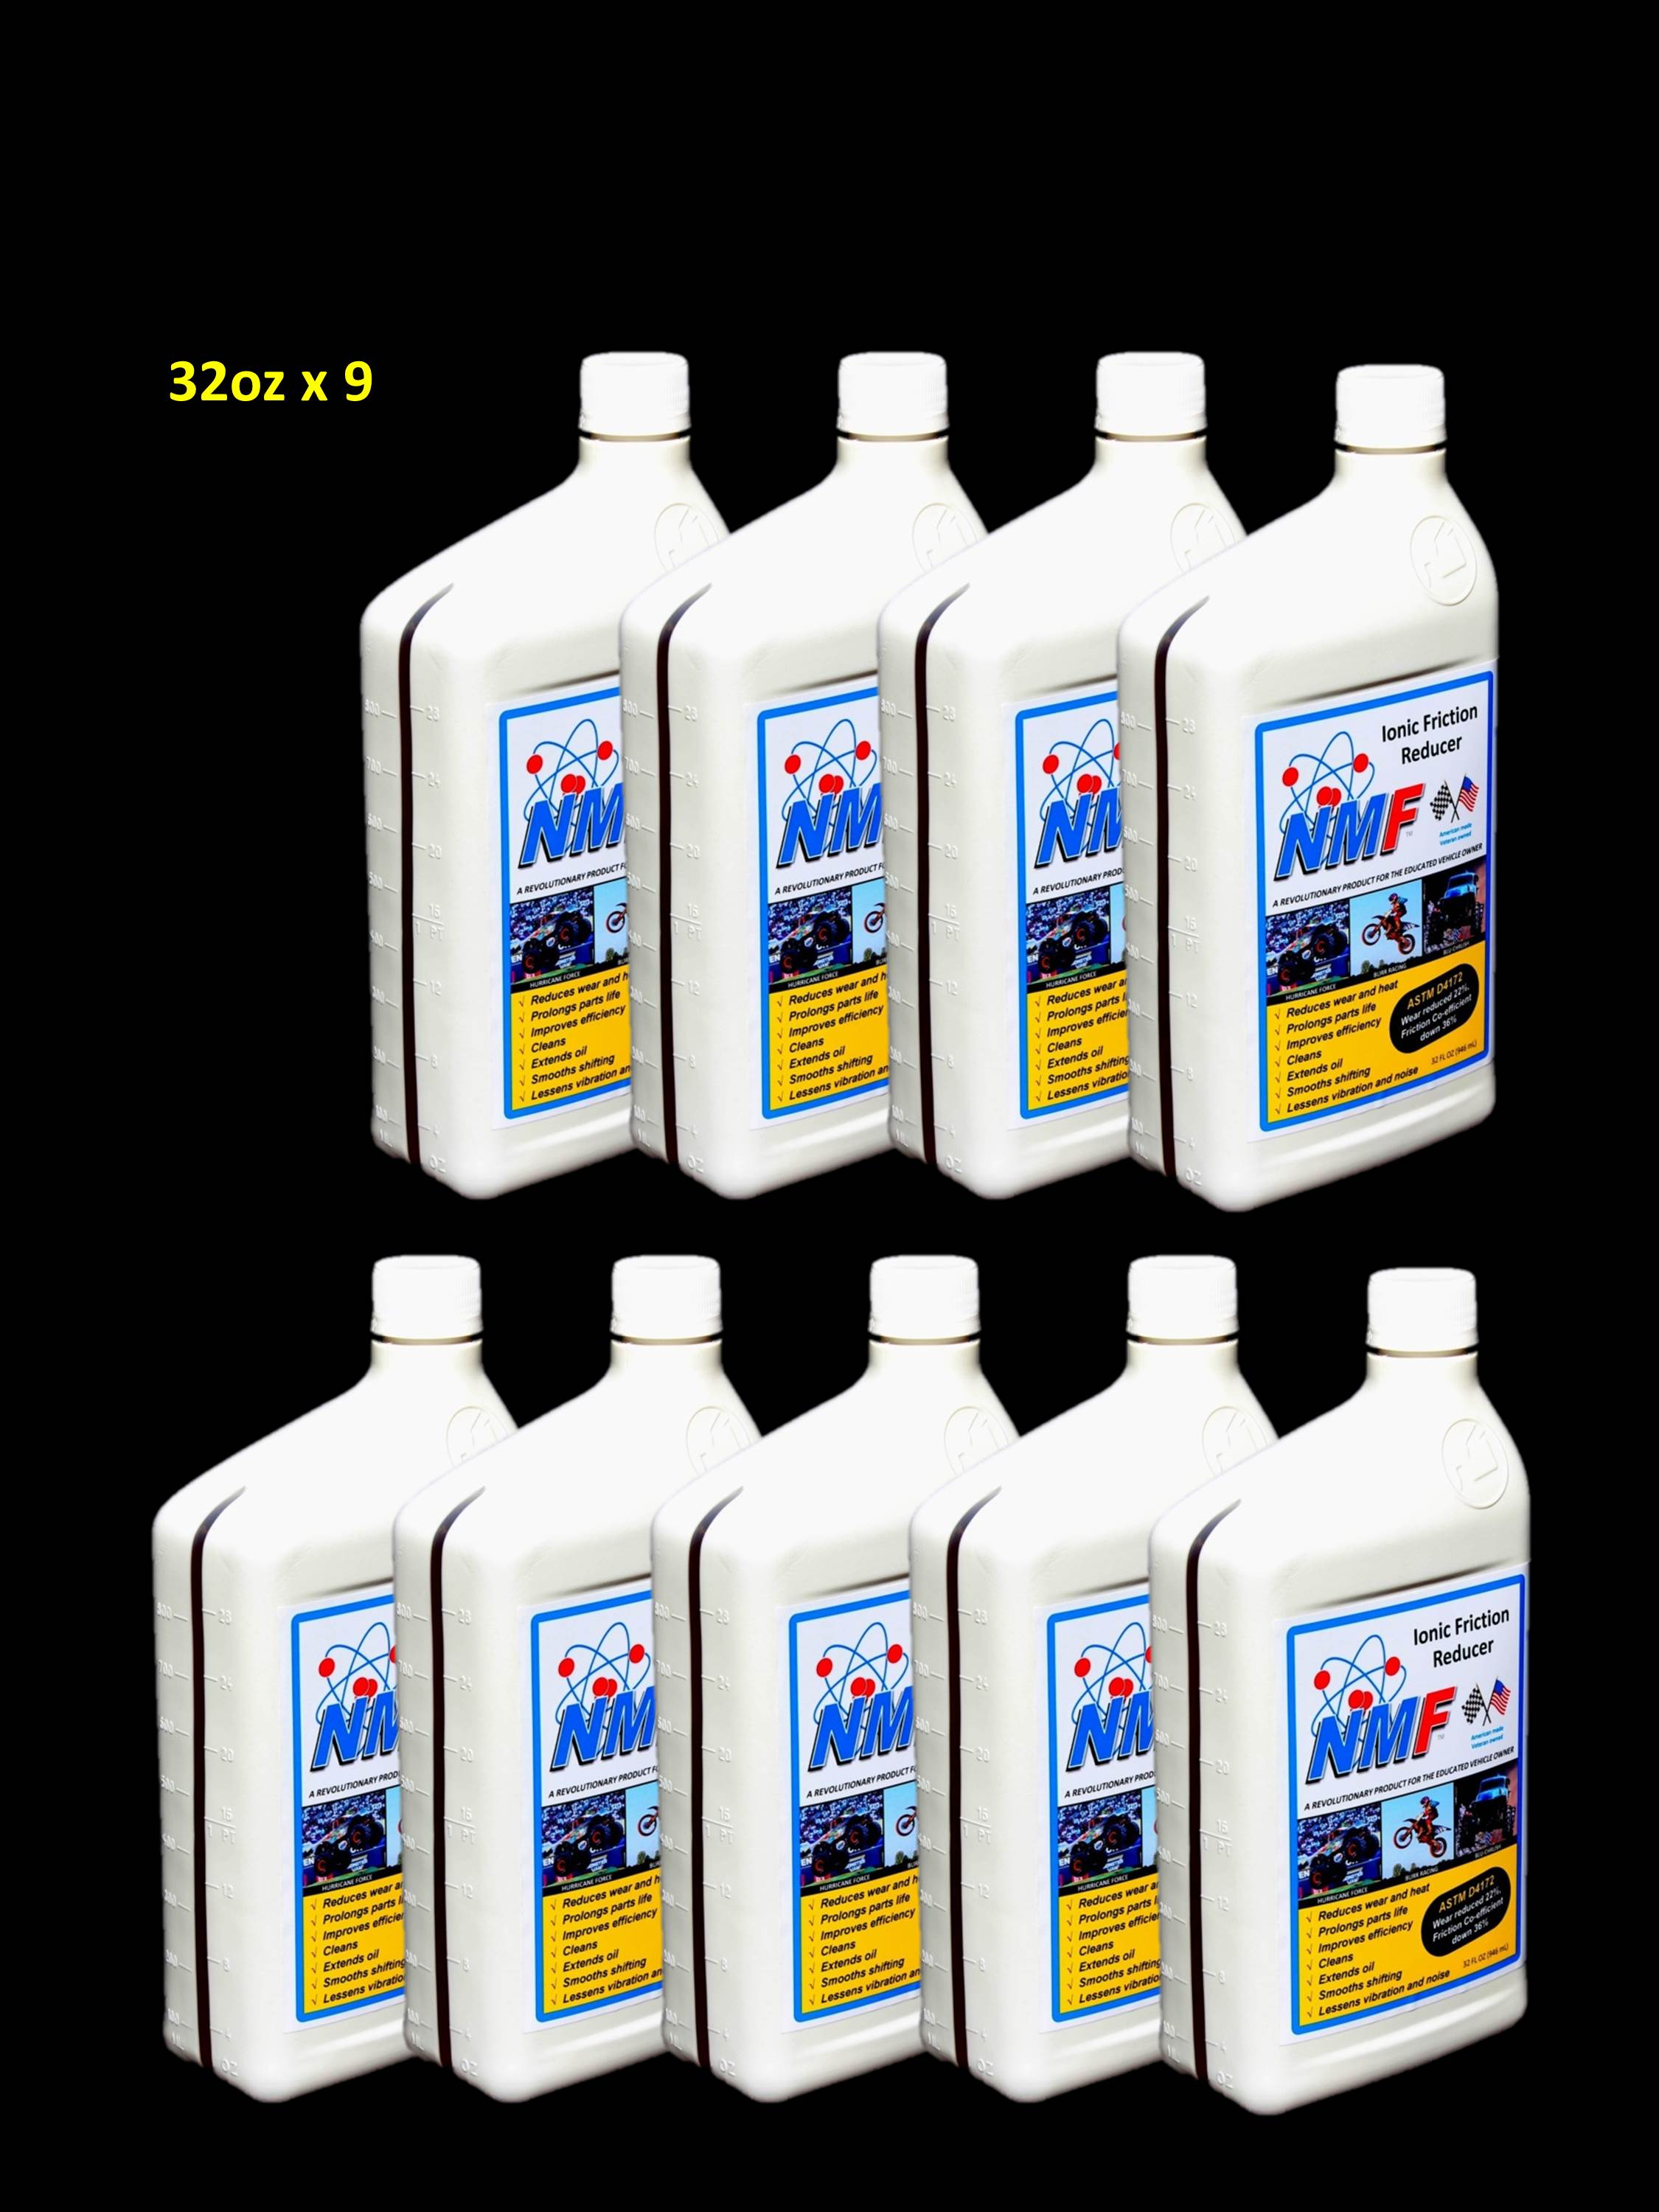 Dealer Case, 32 oz, large (9 bottles)